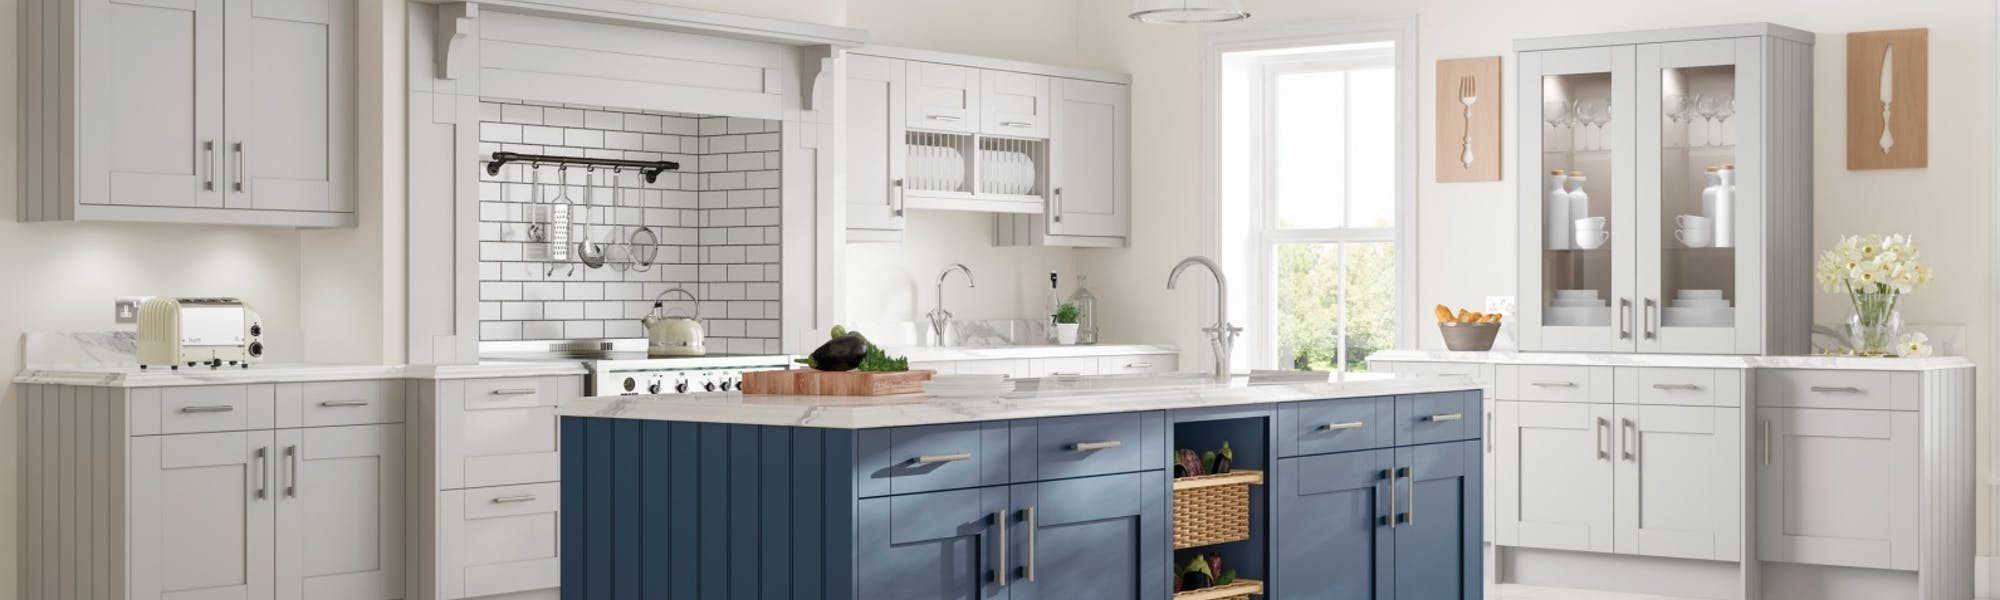 Fitted Kitchens Leeds And Mirfield | More Kitchens